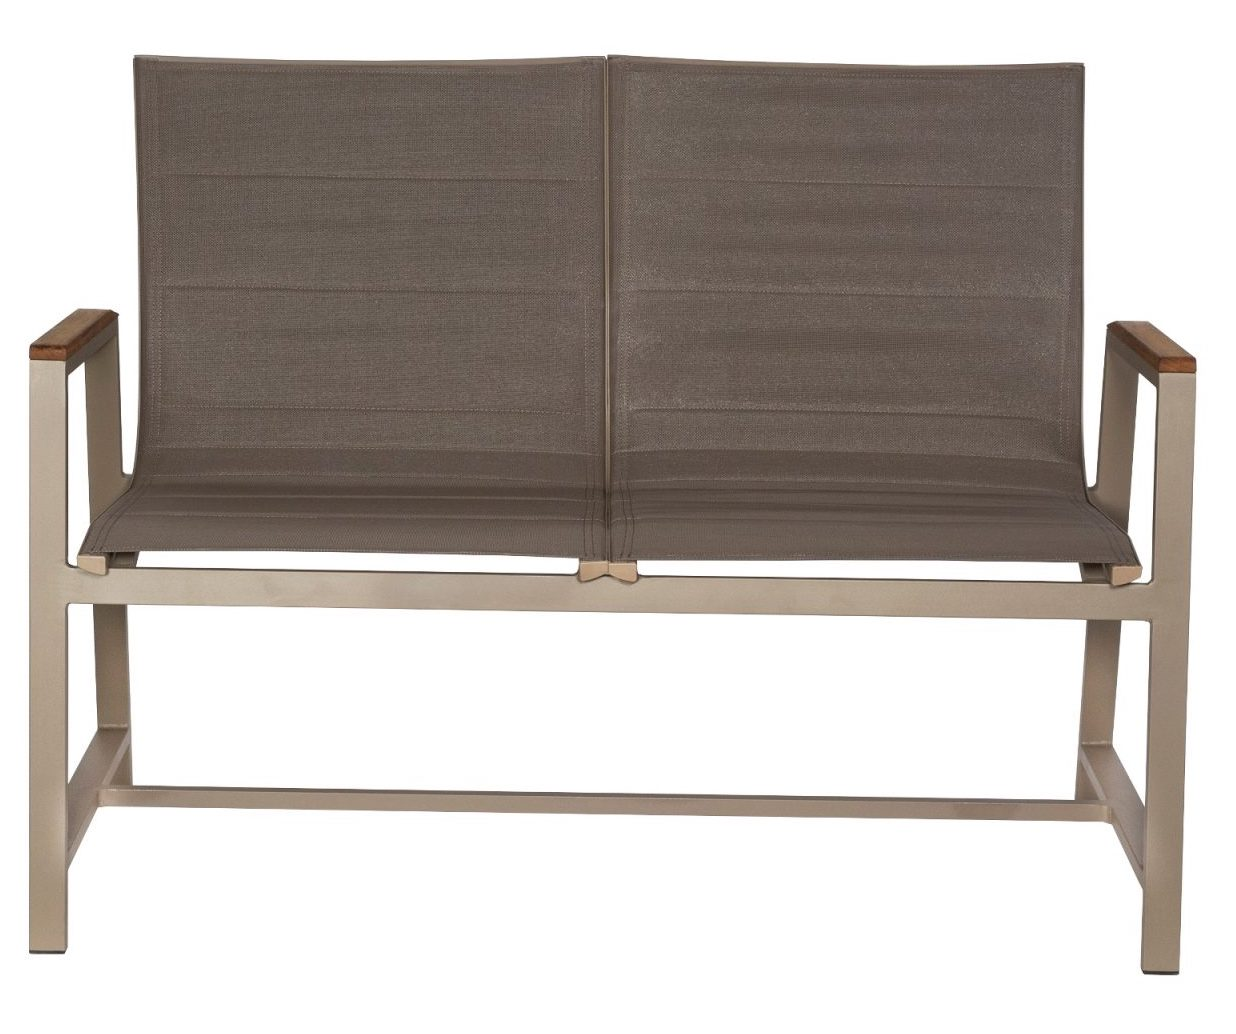 Outdoor Padded Sling Bench Grd Brbp